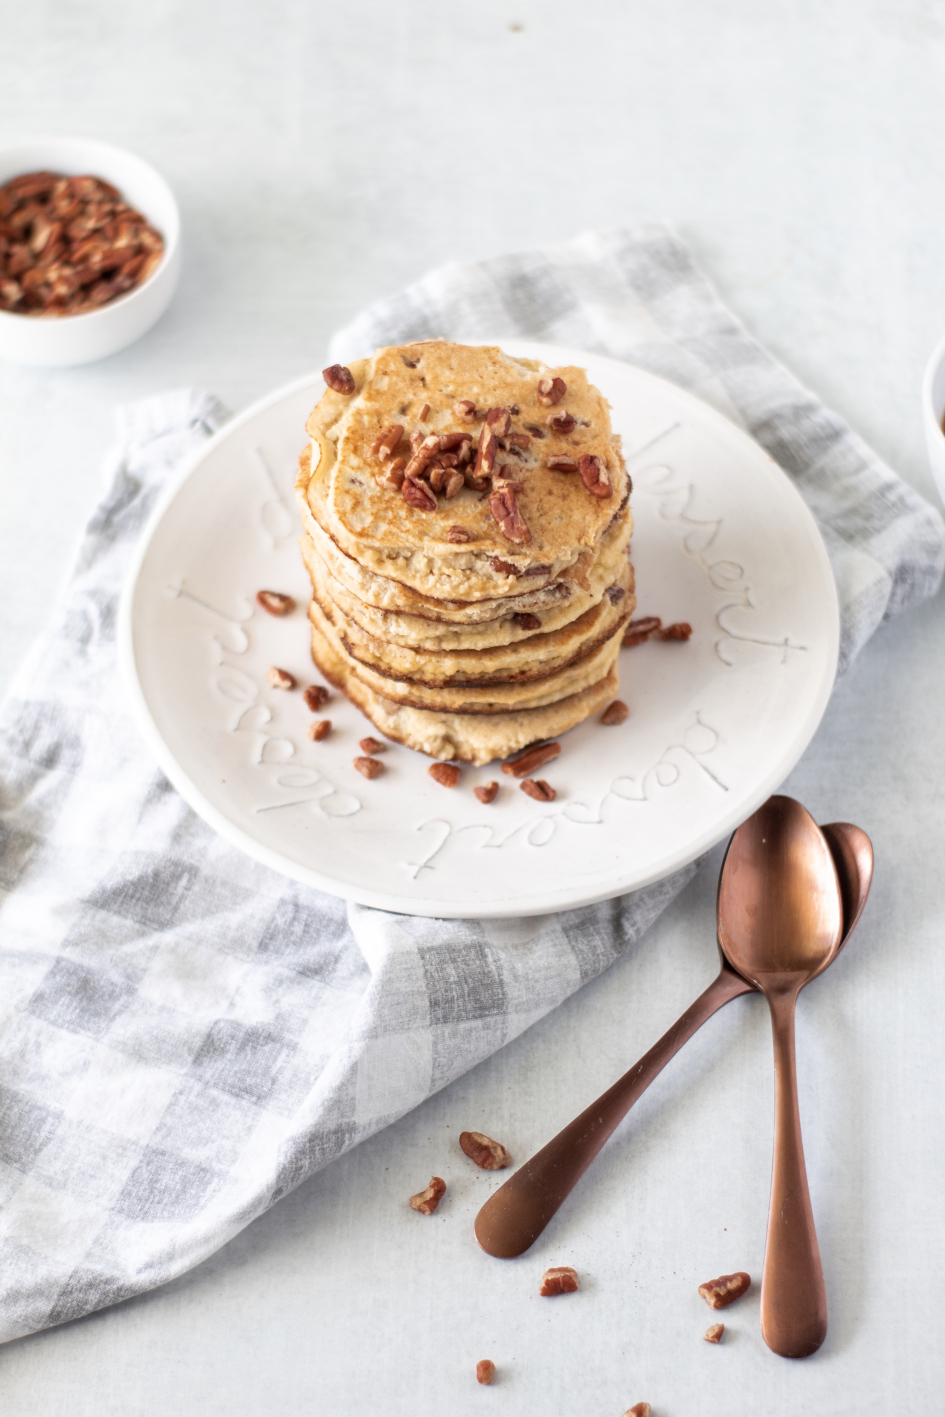 Keto Pancakes on white plate topped with pecans